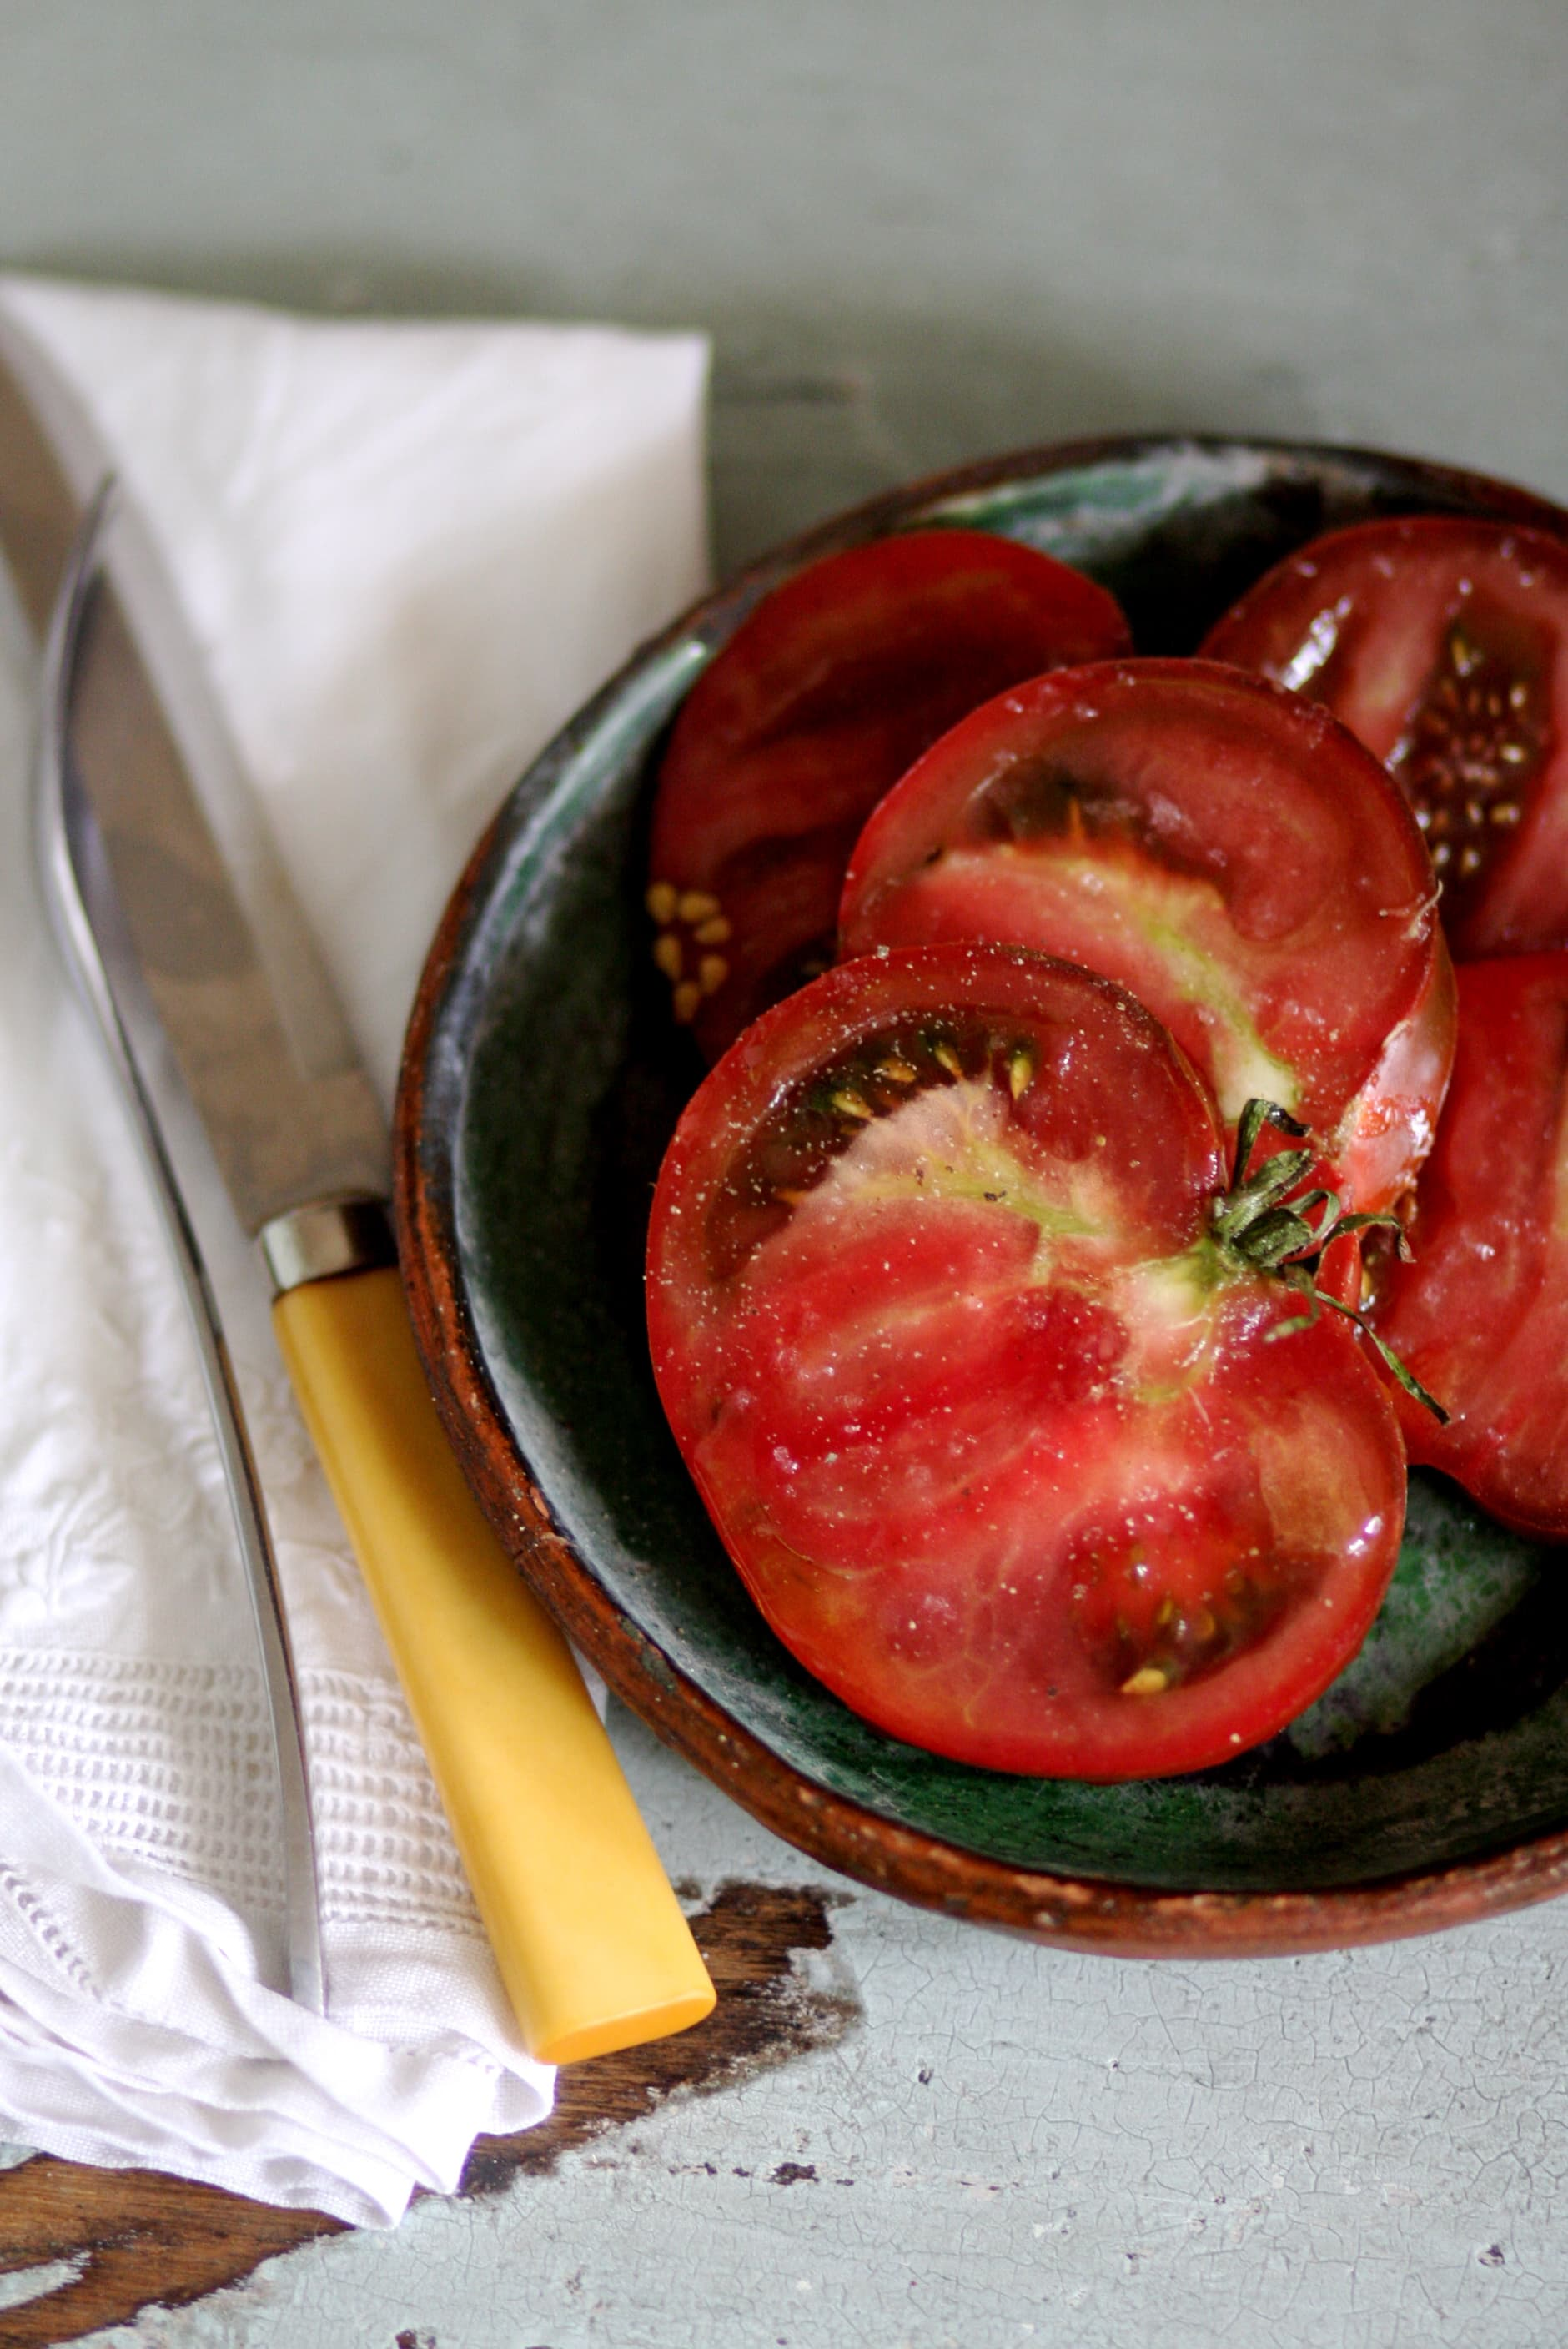 Eating Tomatoes in August